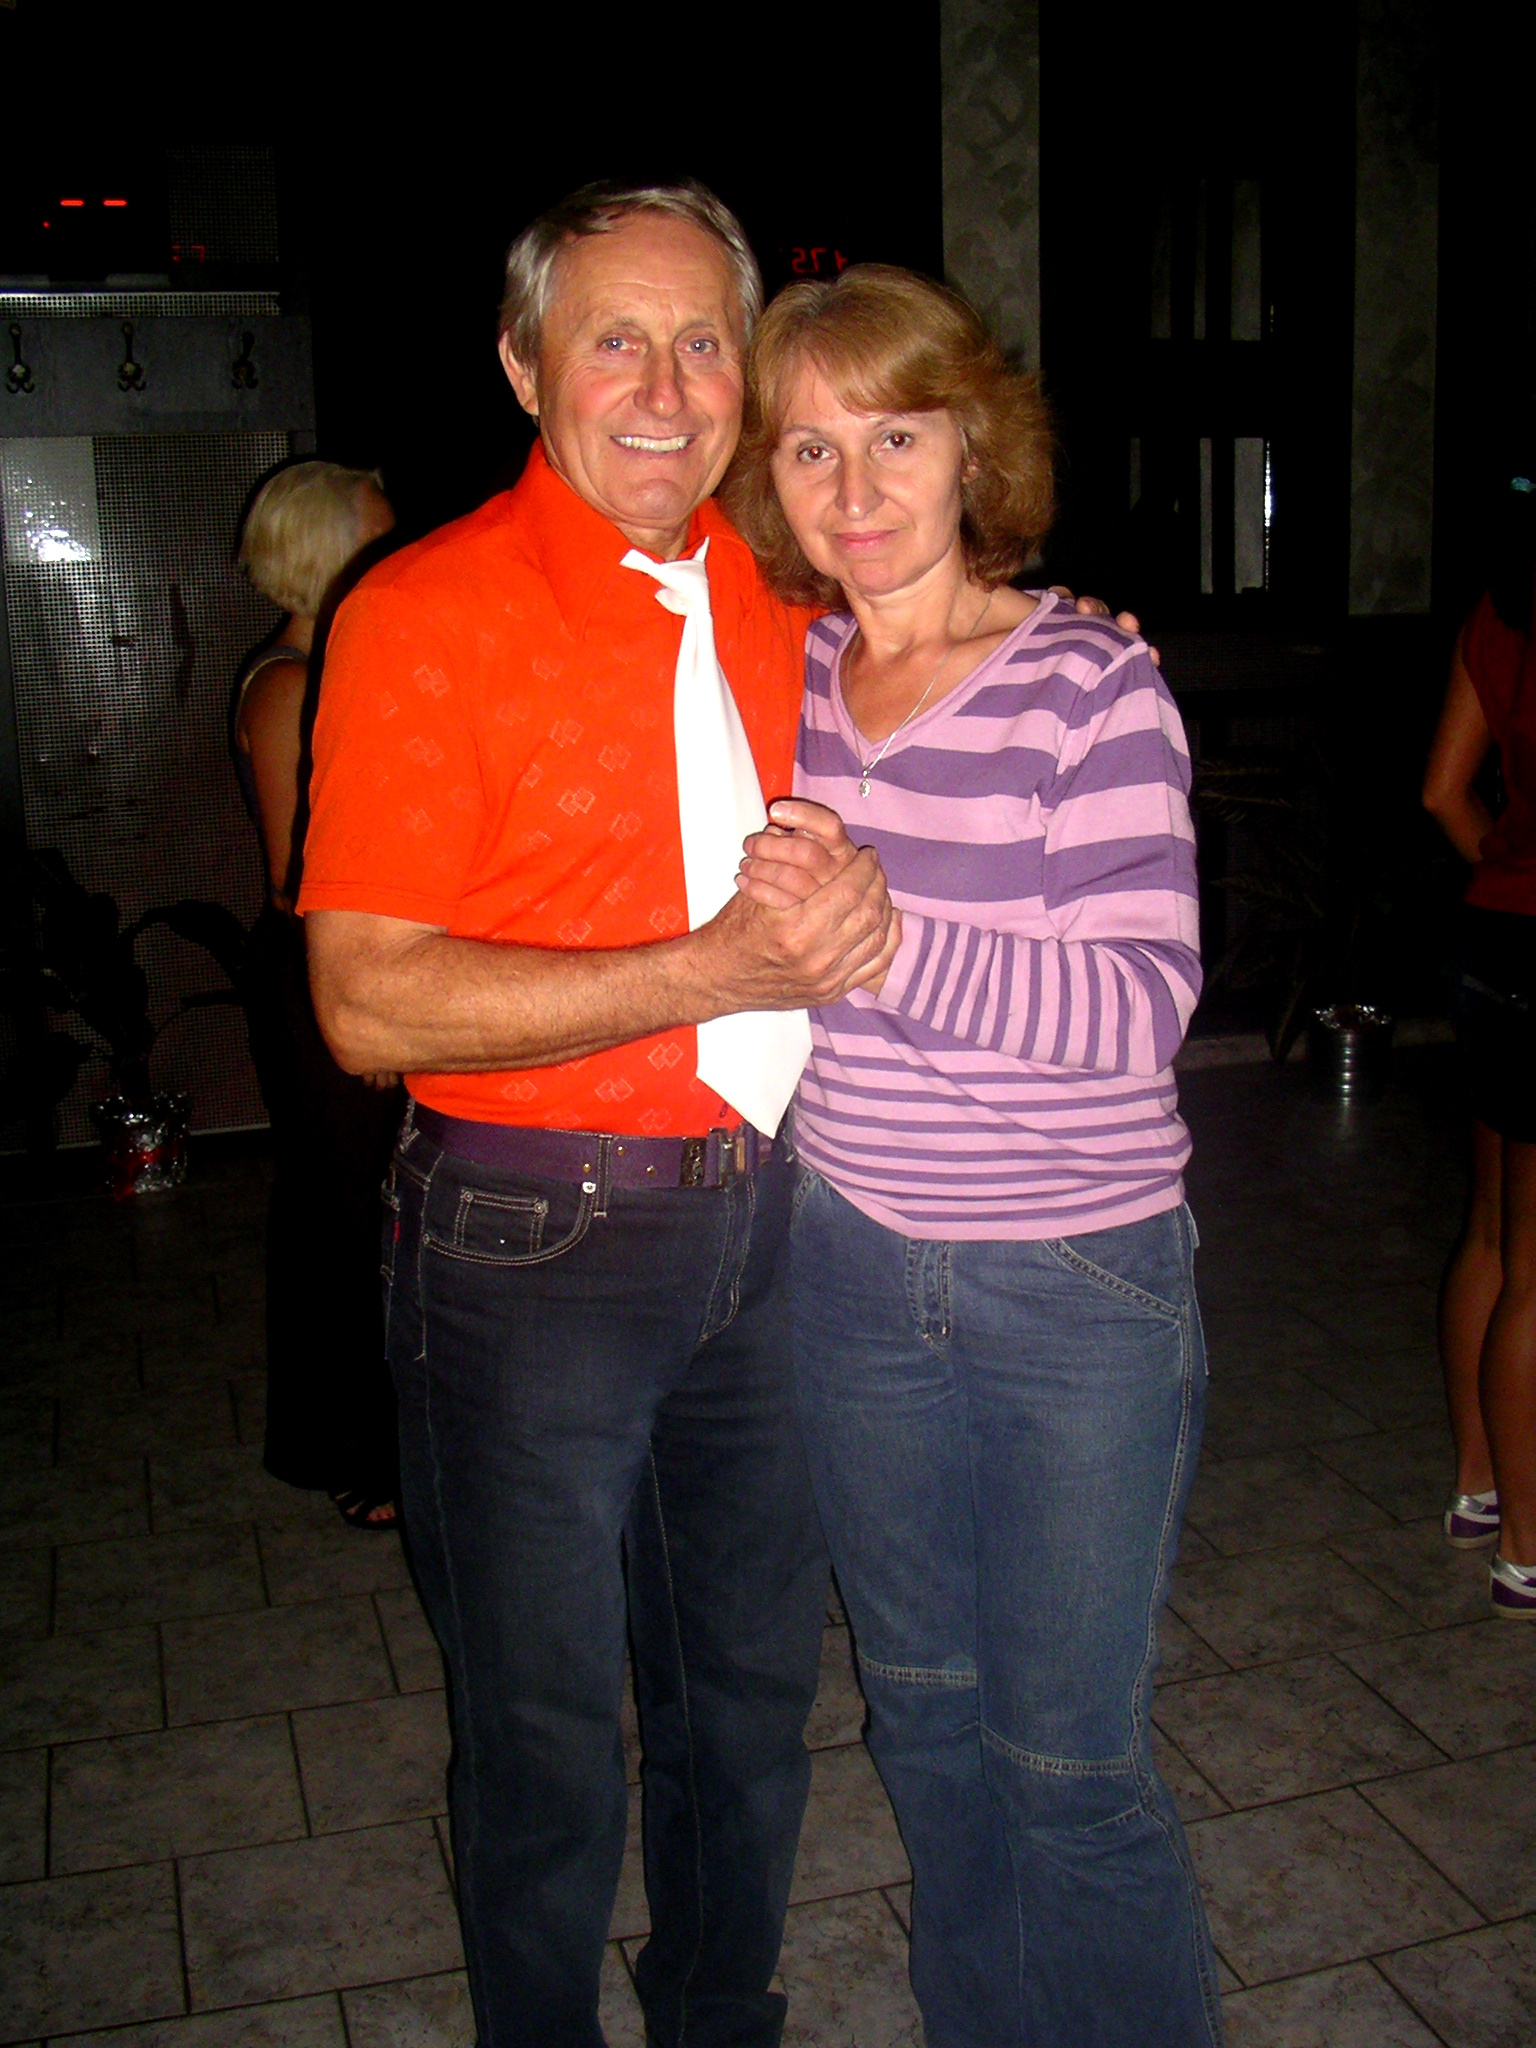 party_v_barvach_18_20111111_1698217085